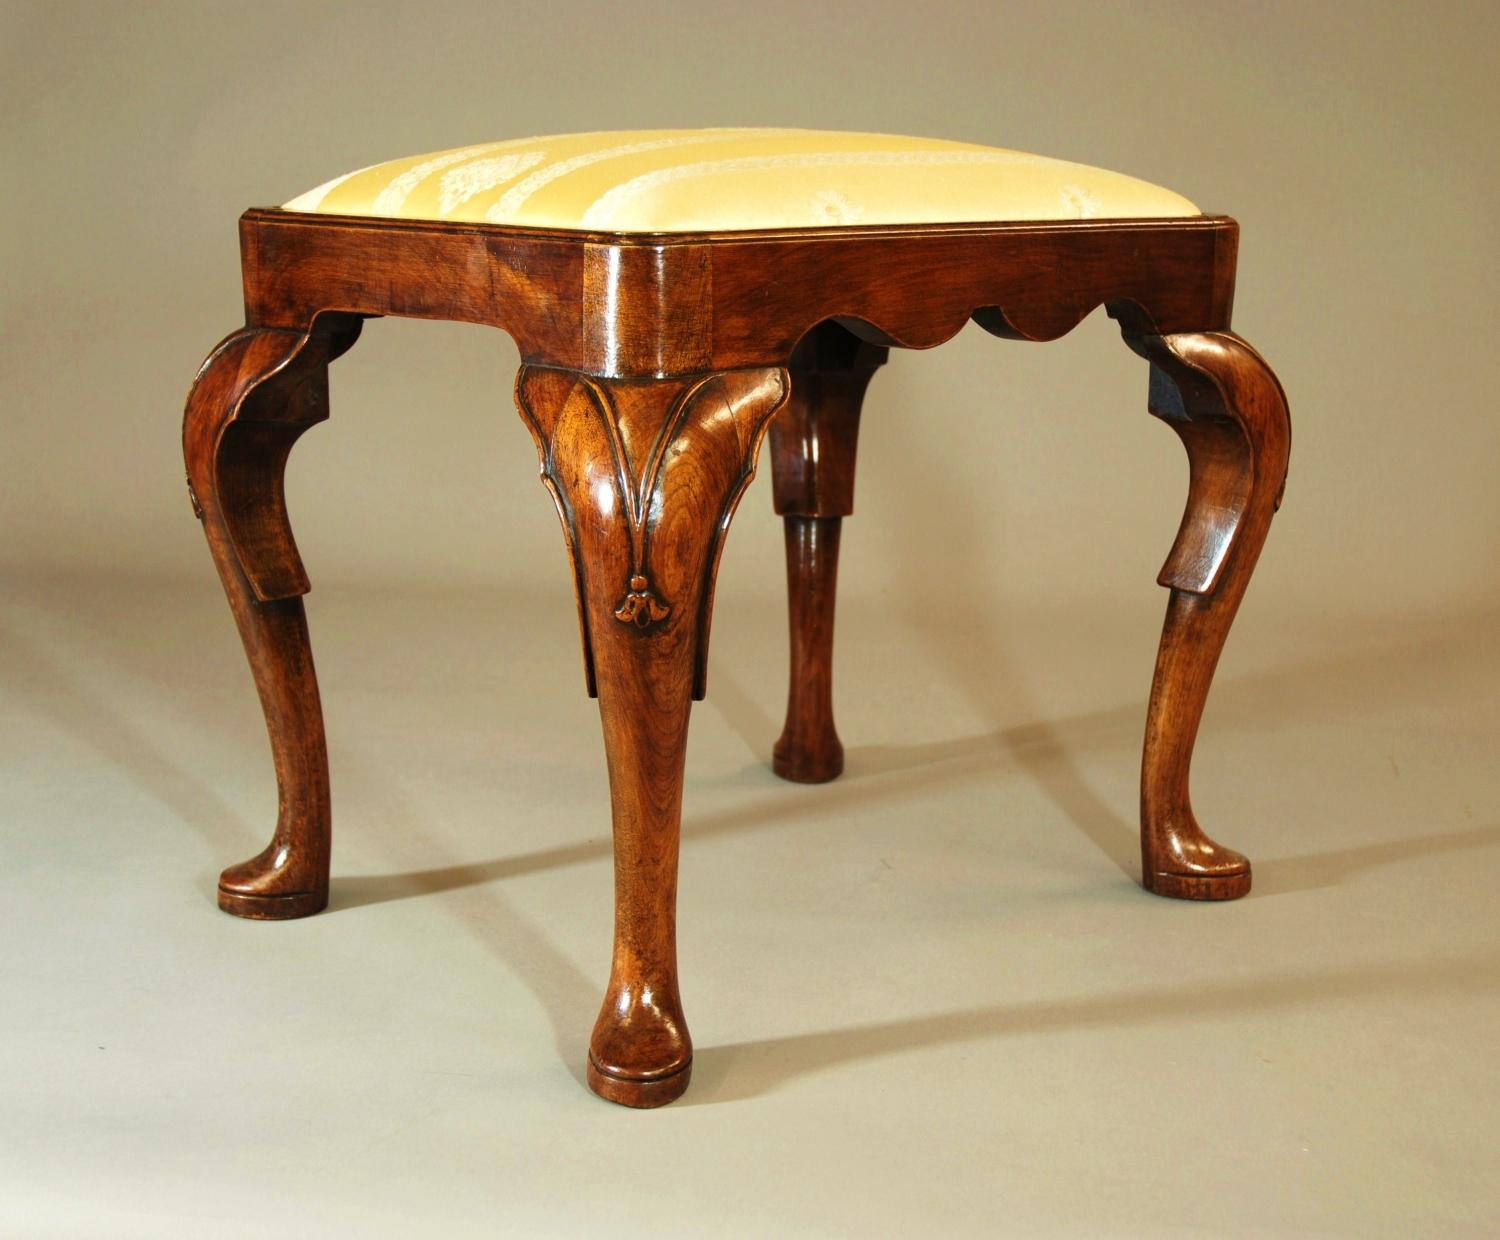 Early 20thc walnut cabriole leg stool